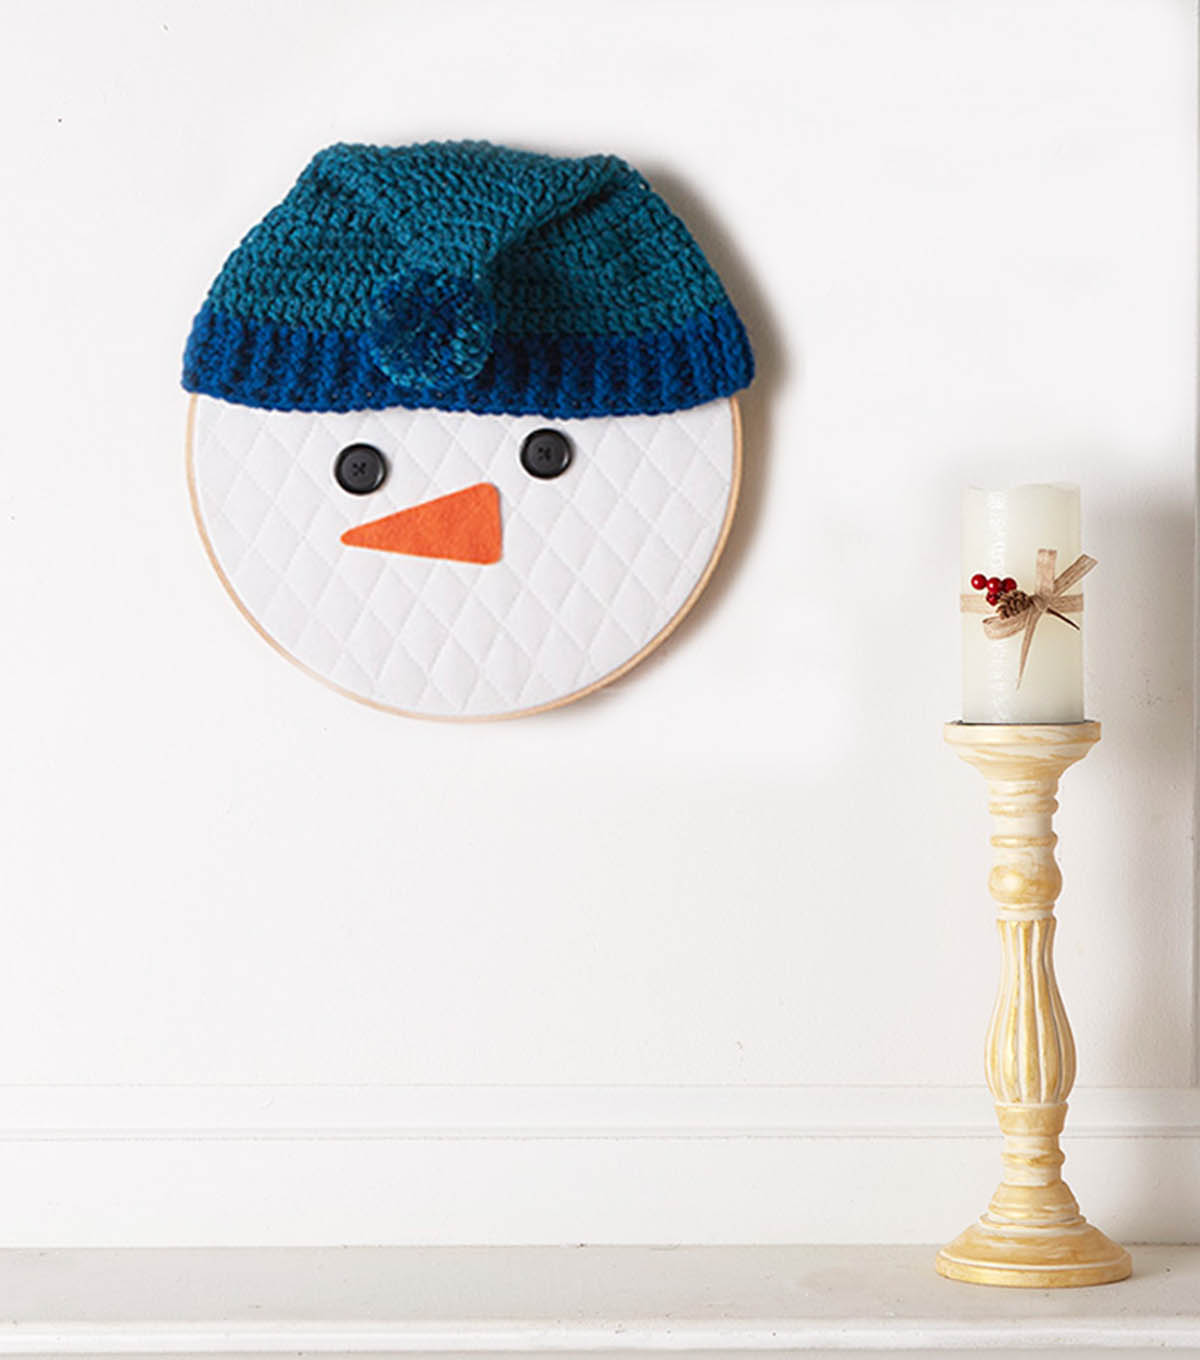 How To Make A Snowman Embroidery Hoop